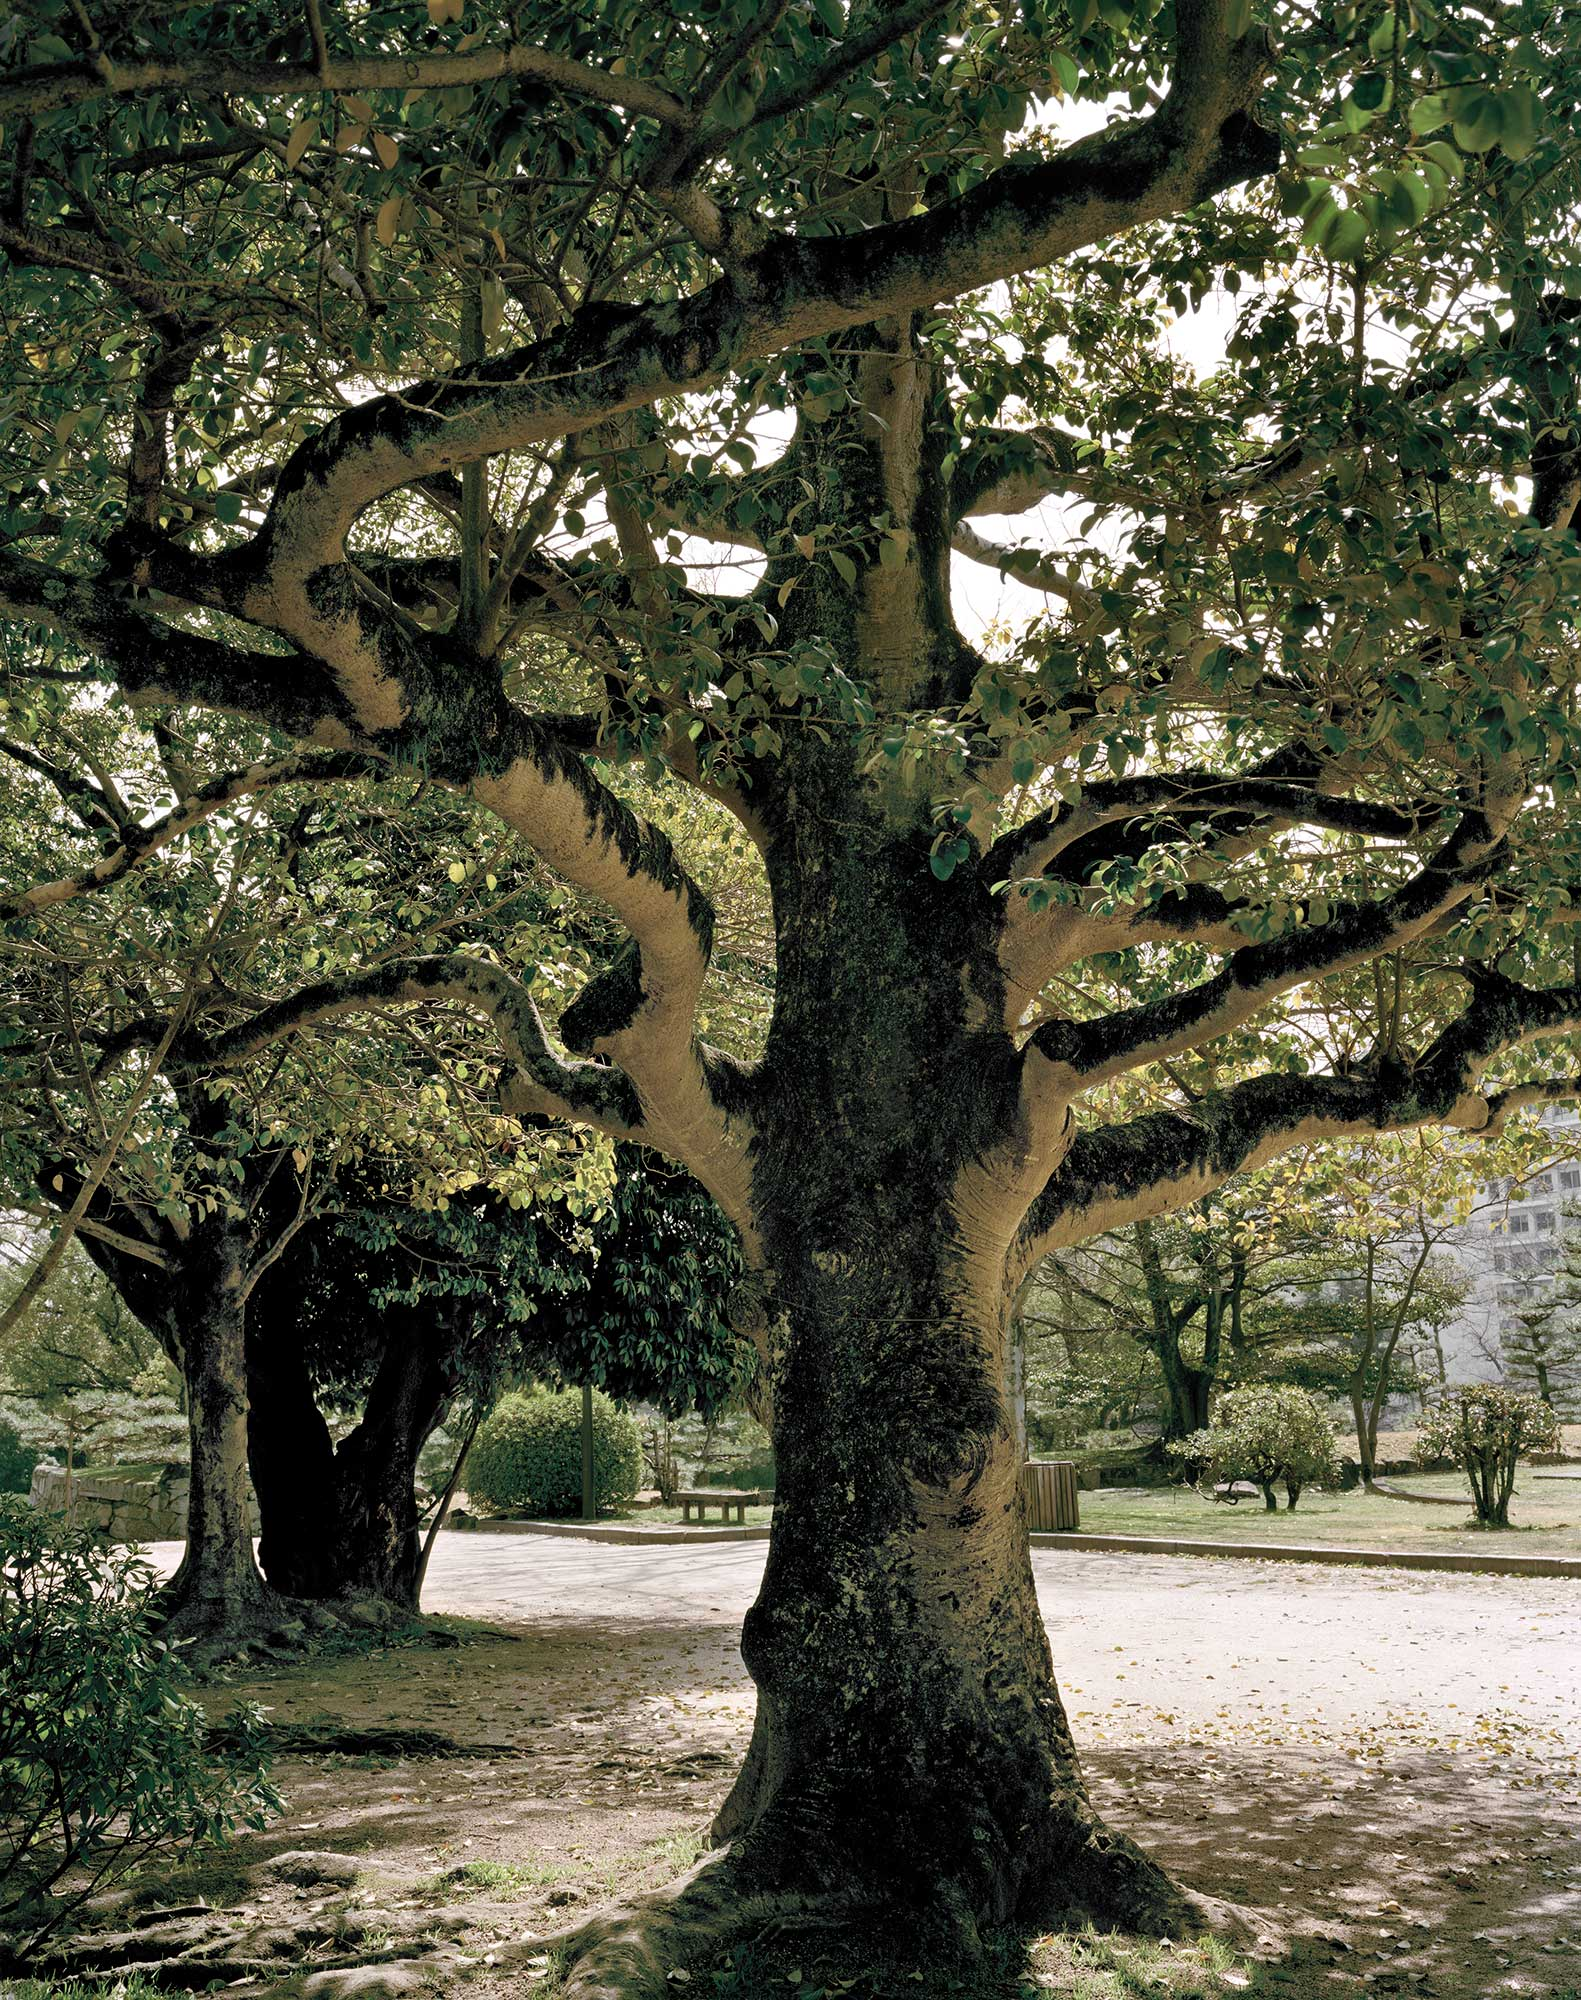 A-bomb Kurokane Holly Tree Near Hiroshima Castle, Approximately 910 meters from the Hypocenter, 30 x 40, Chromogenic Print, 2013.